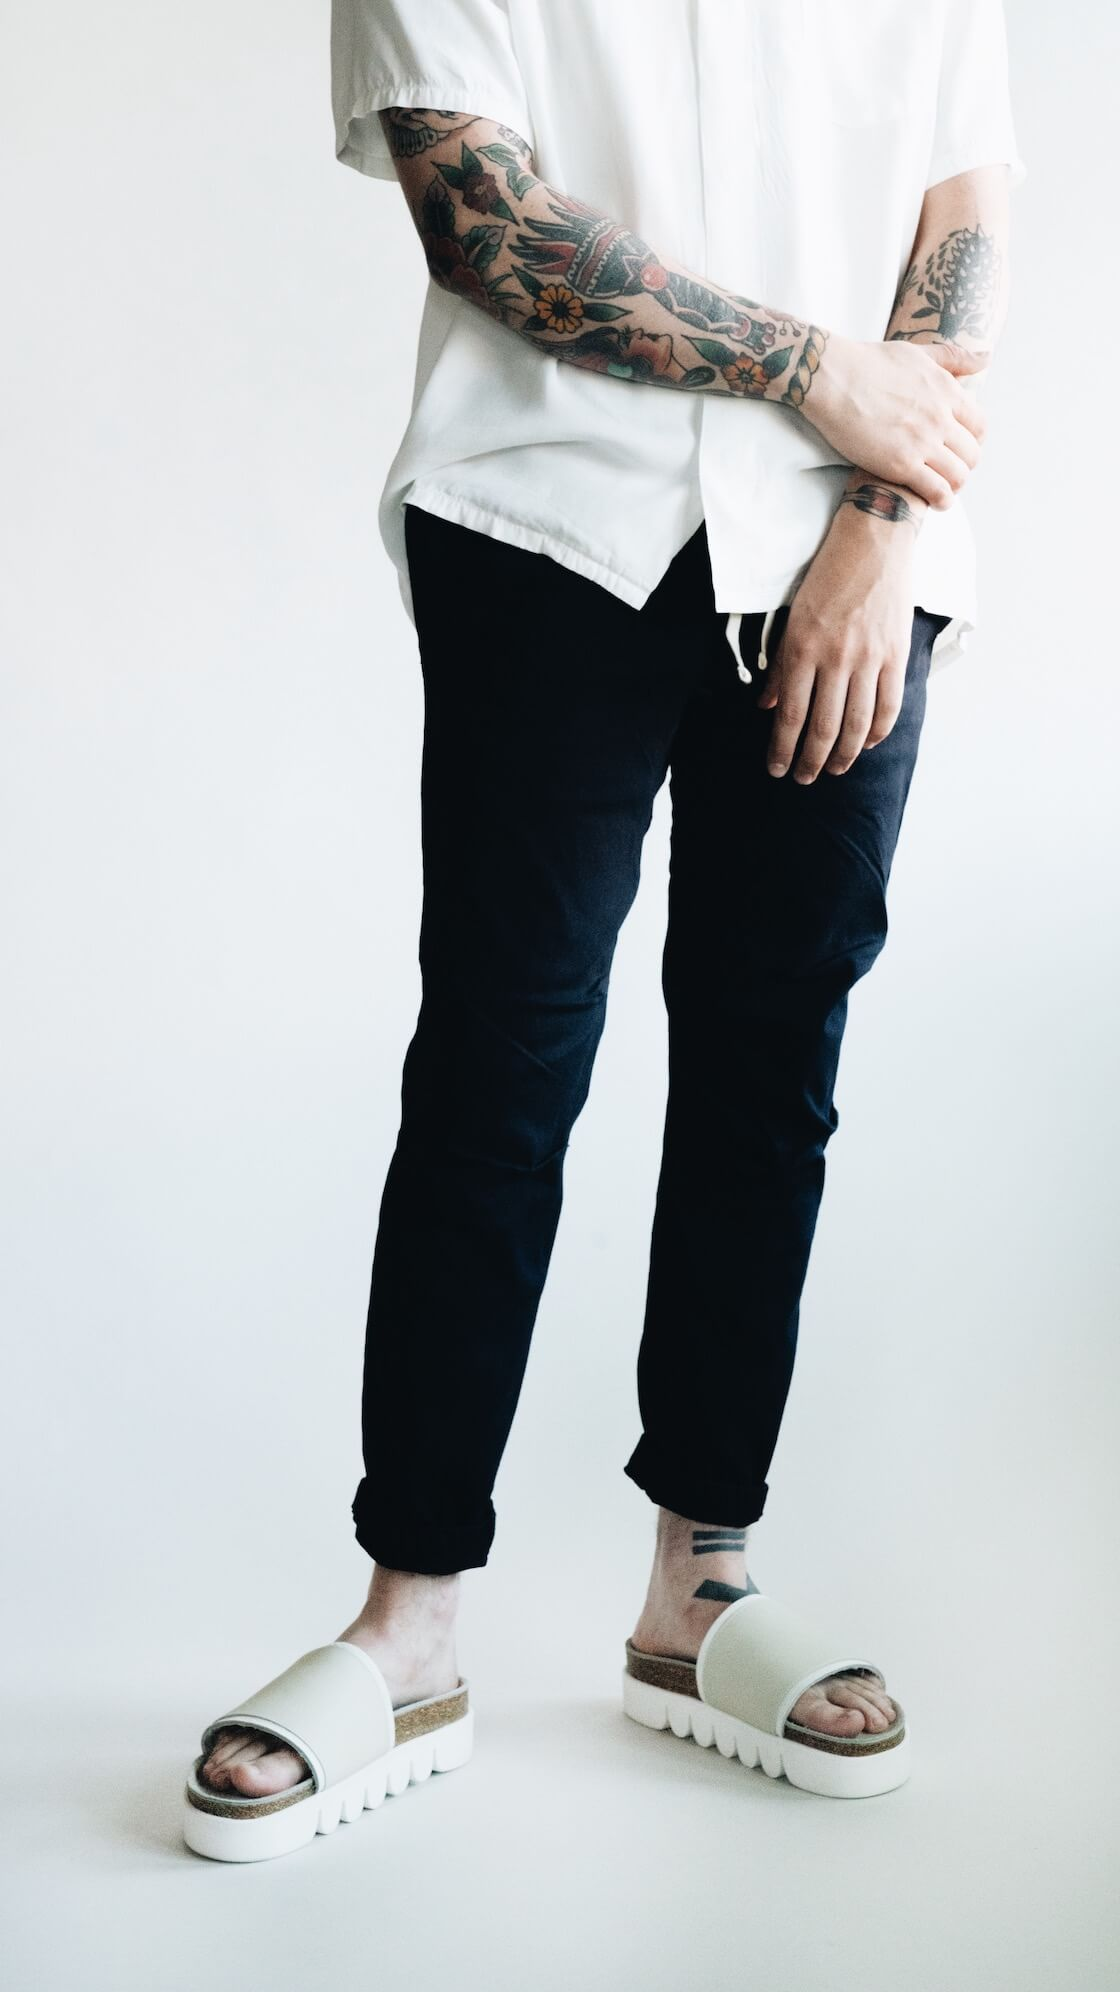 free edge shirt from visvim, gym pants from beams plus and hender scheme caterpillar sandals on body